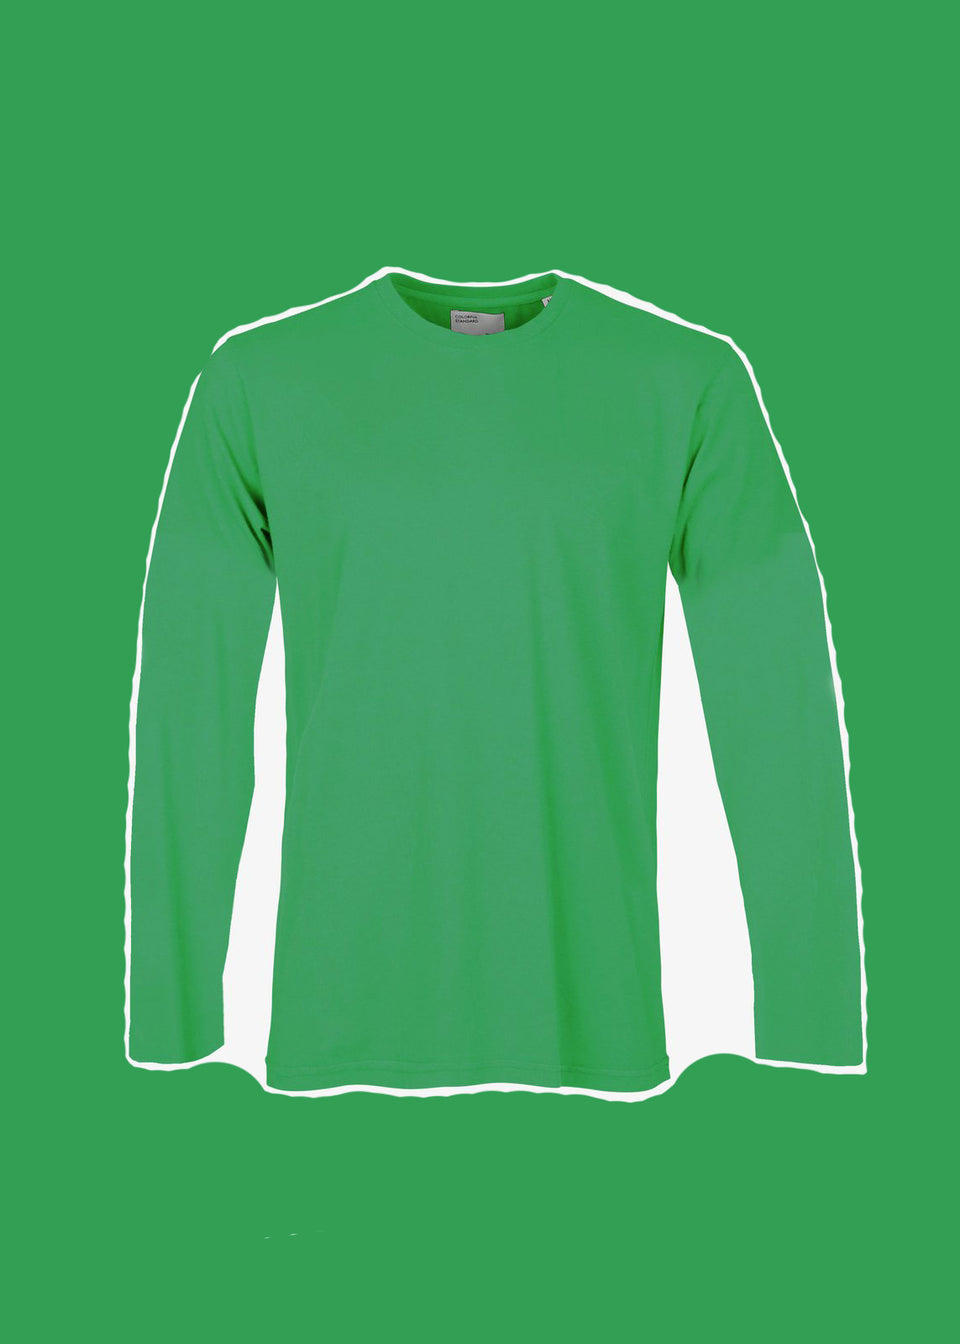 COLORFUL STANDARD • T-shirt Manches longues Coton bio Vert Kelly